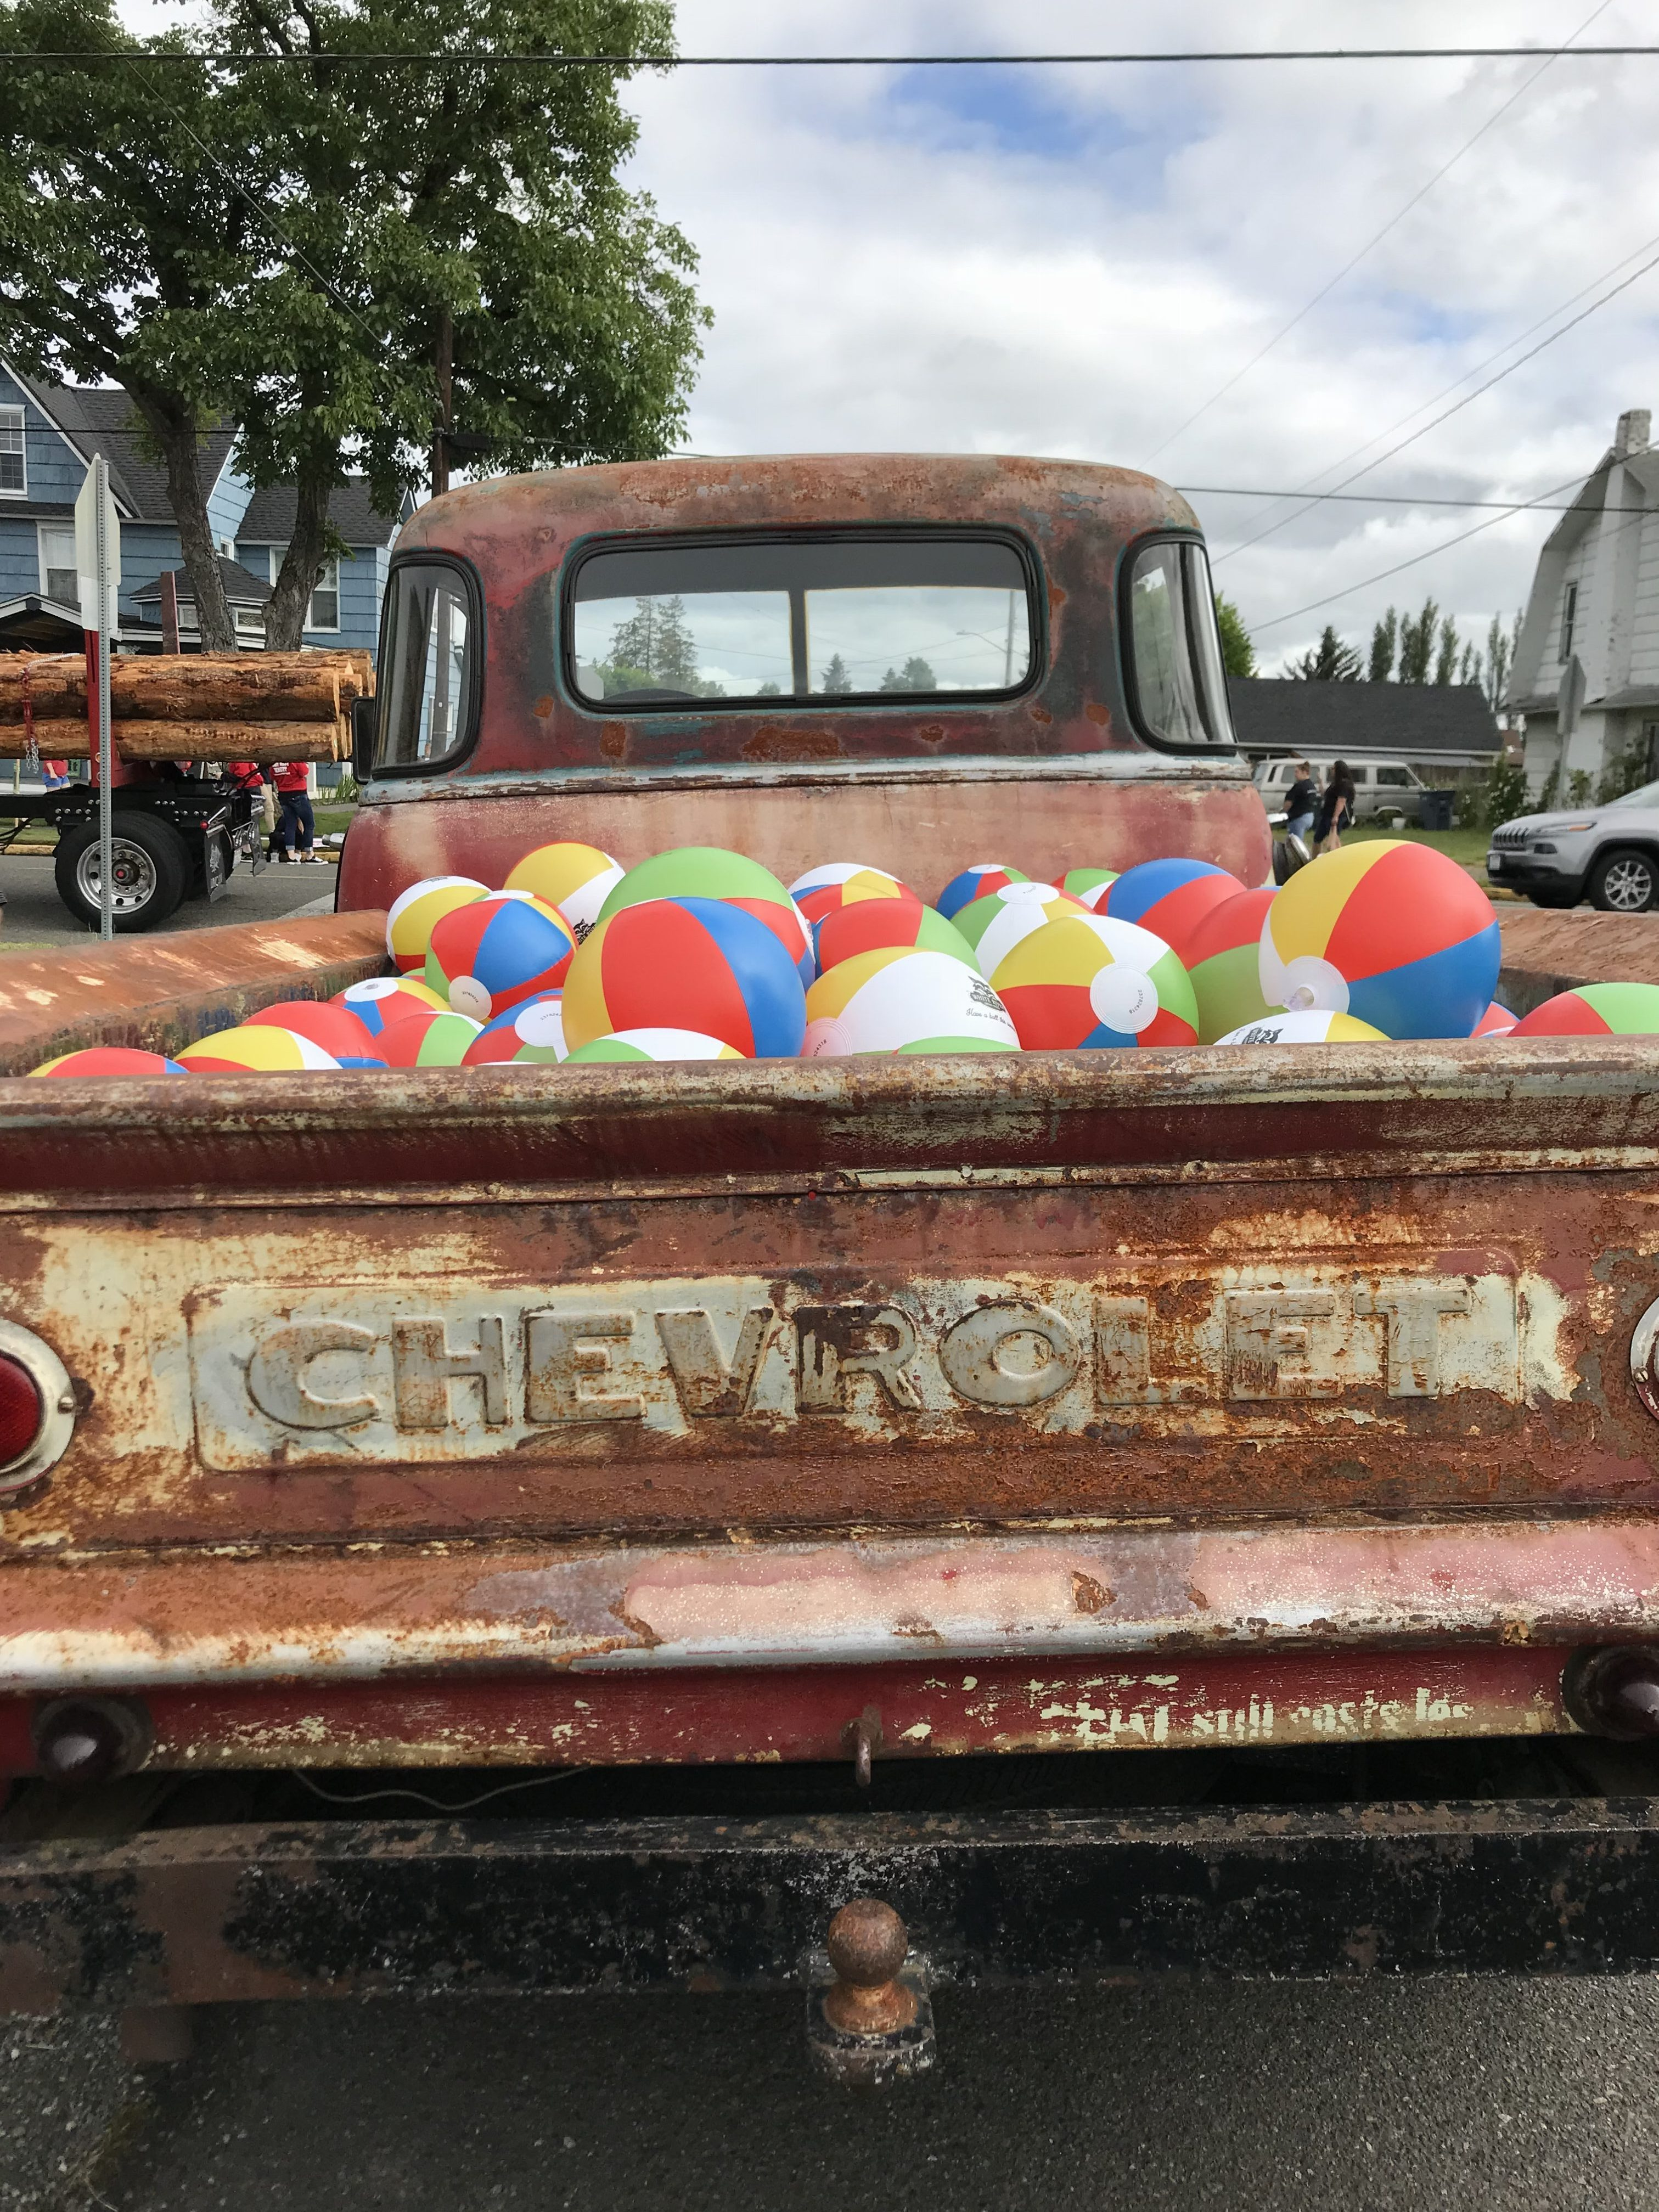 Lots of colorful beach balls in the back of an old pick up Chevy truck